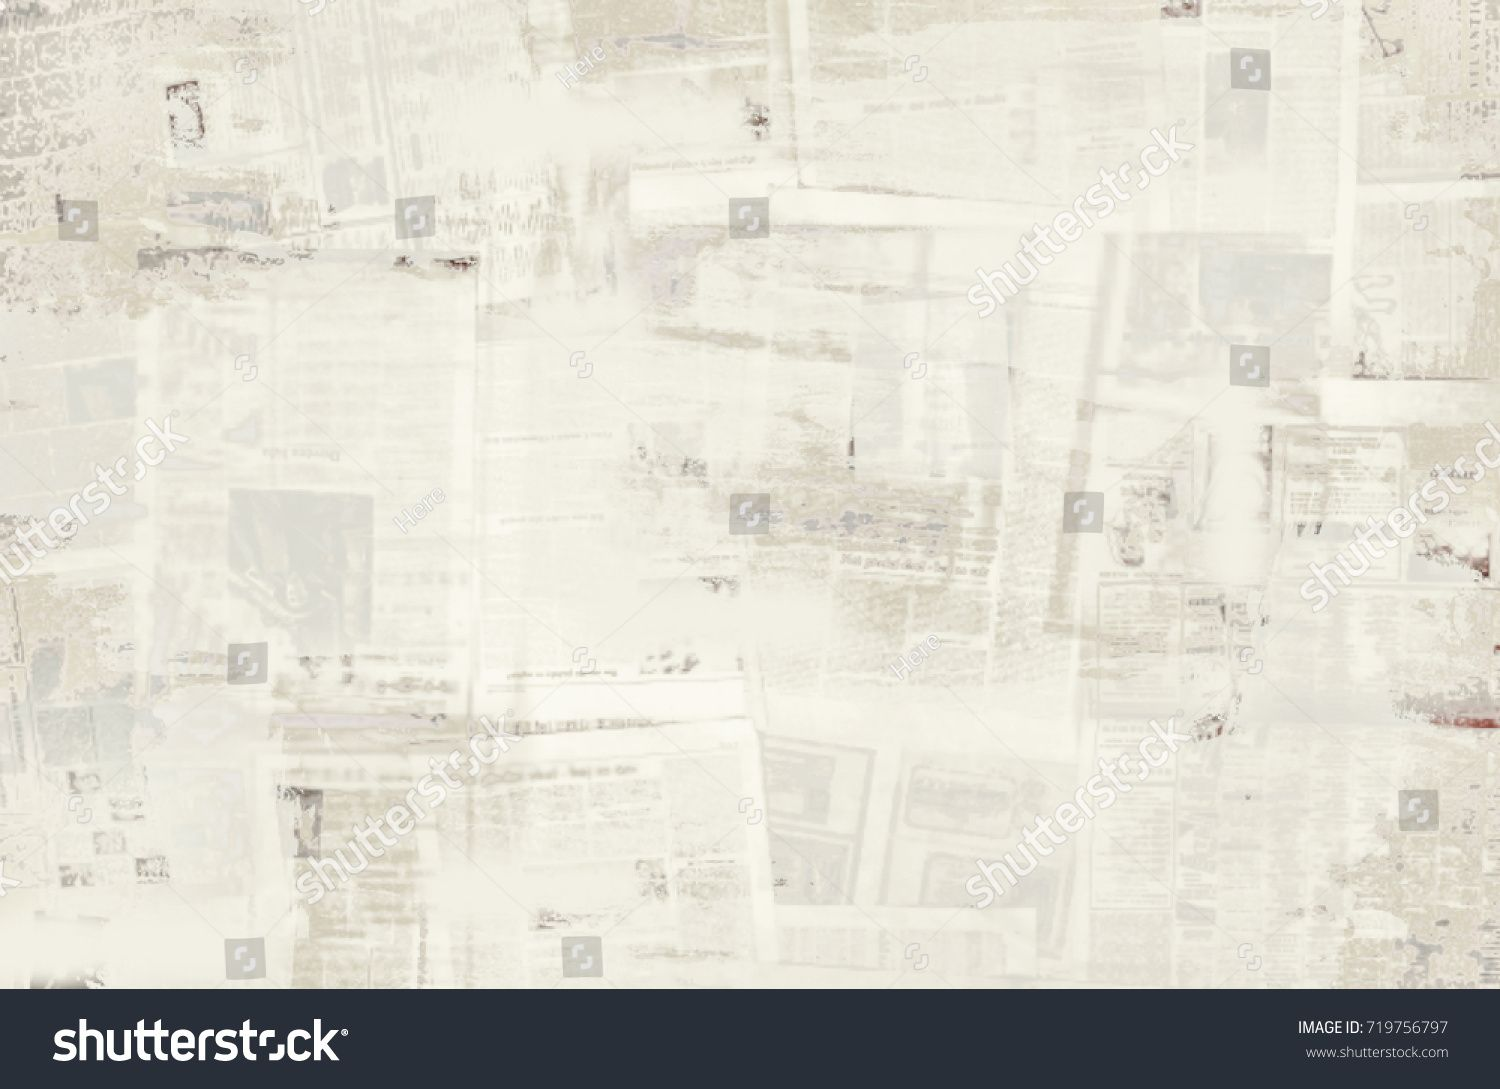 OLD NEWSPAPER BACKGROUND OLD PAPER TEXTURE BACKGROUNDNEWSPAPER 1500x1089